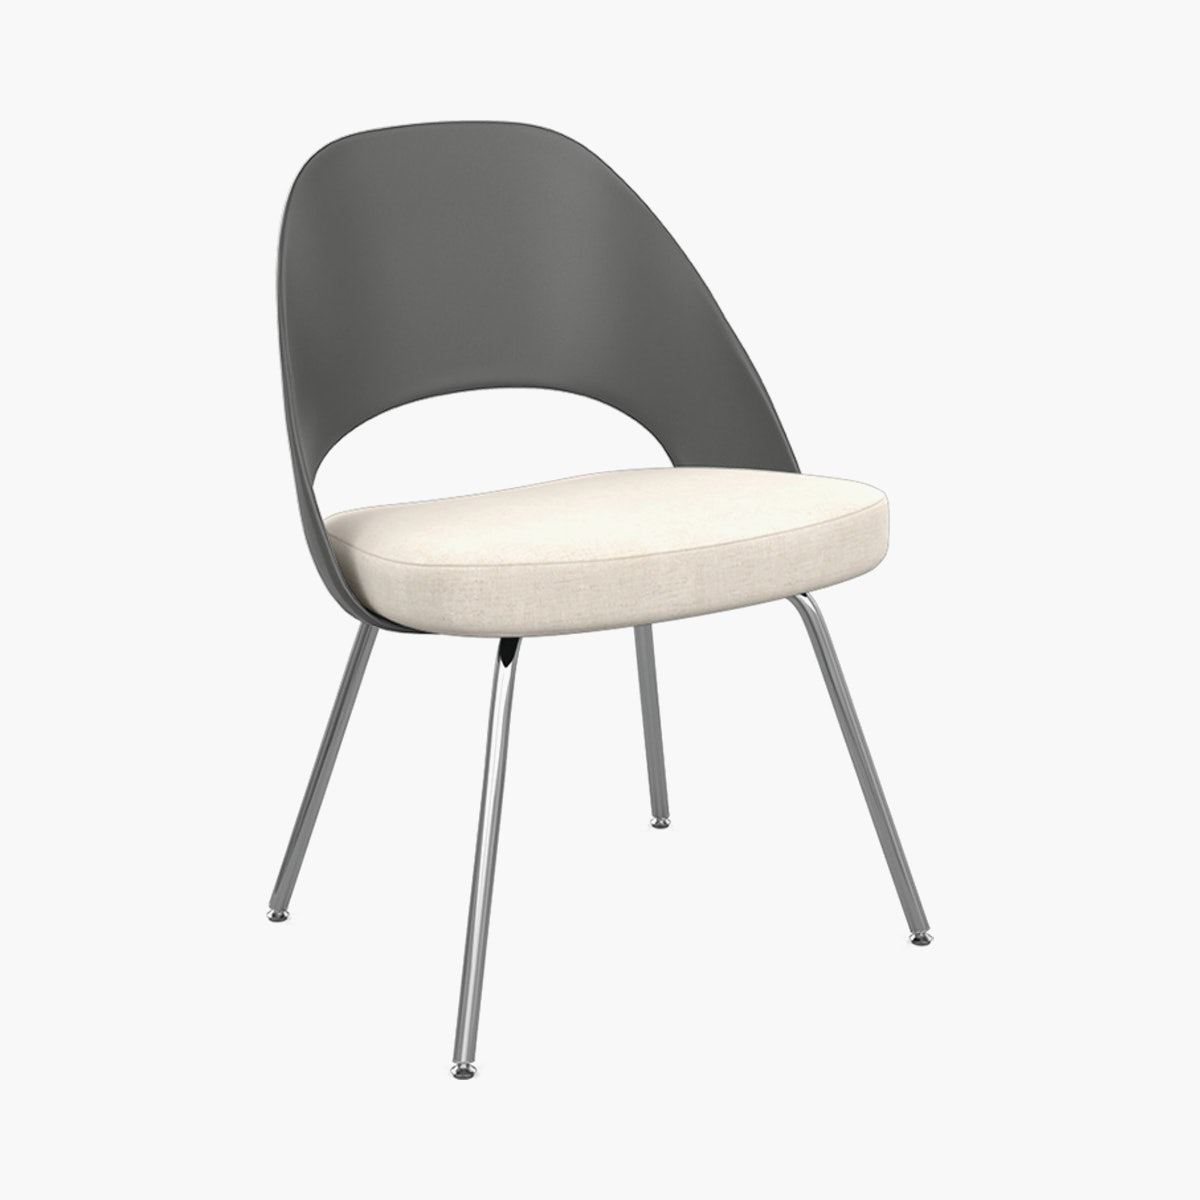 Saarinen Executive Plastic Chair